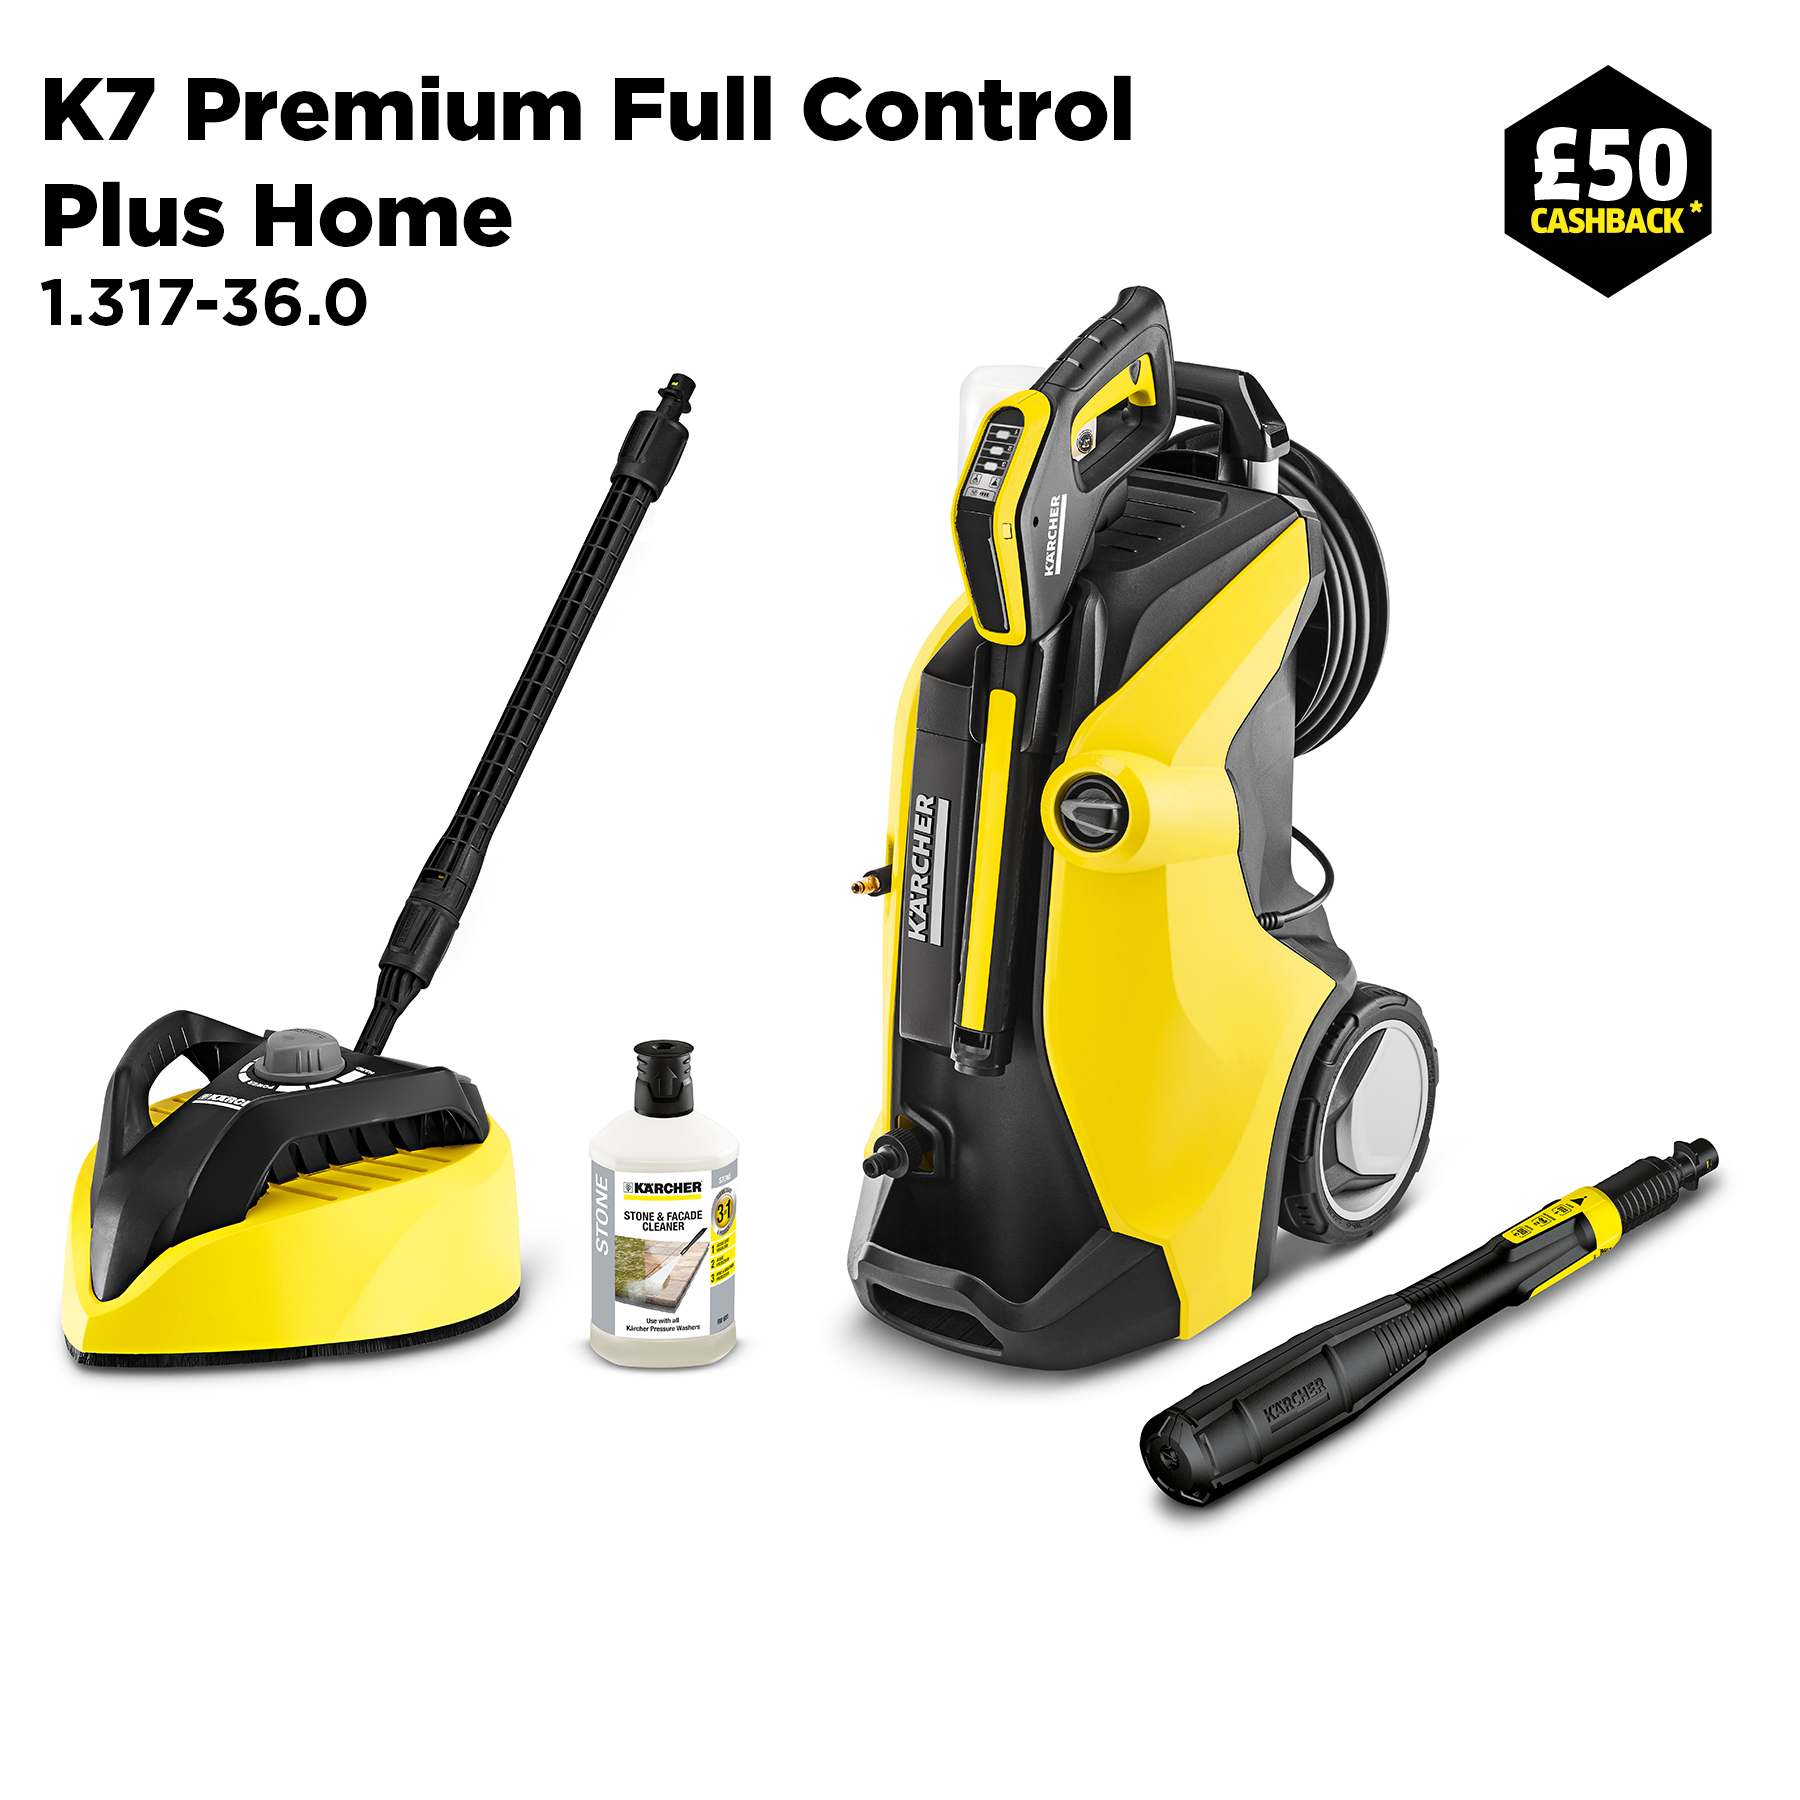 K7-Premium-Full-Control-Plus-Home-50UK